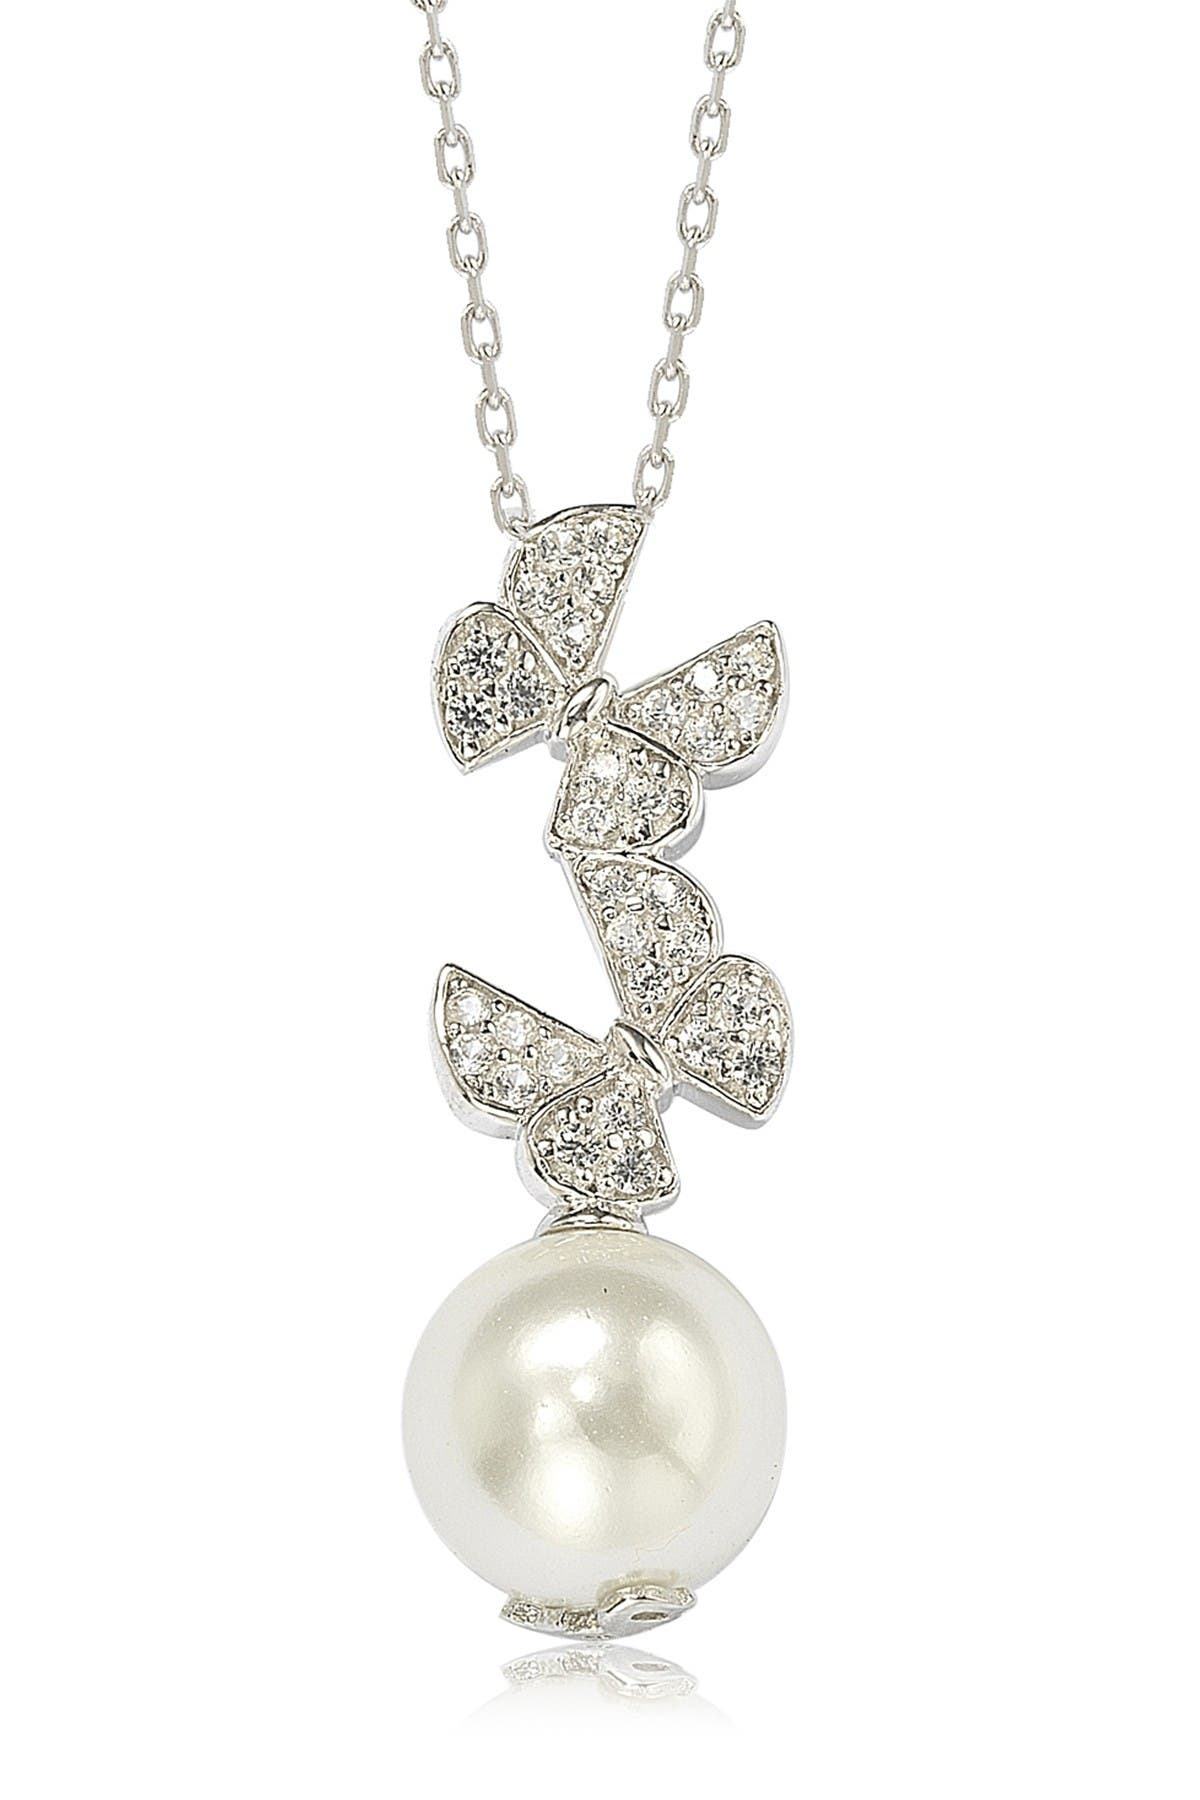 Image of Suzy Levian Sterling Silver CZ Pave 10mm Cultured Freshwater Pearl Butterfly Shape Pendant Necklace